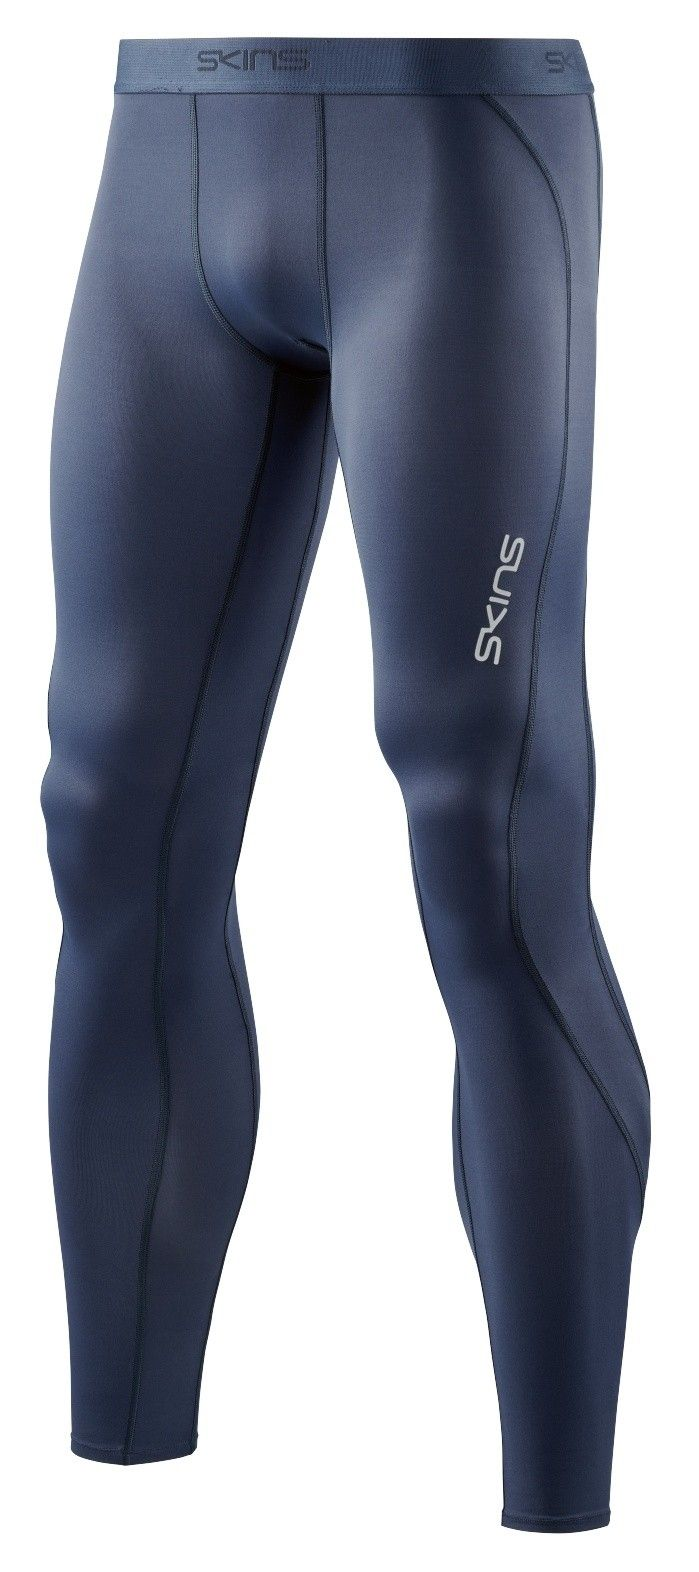 9eb6f850ca DNAmic CORE Men's Compression Long Tights | Gym wears | Tights, Gym ...